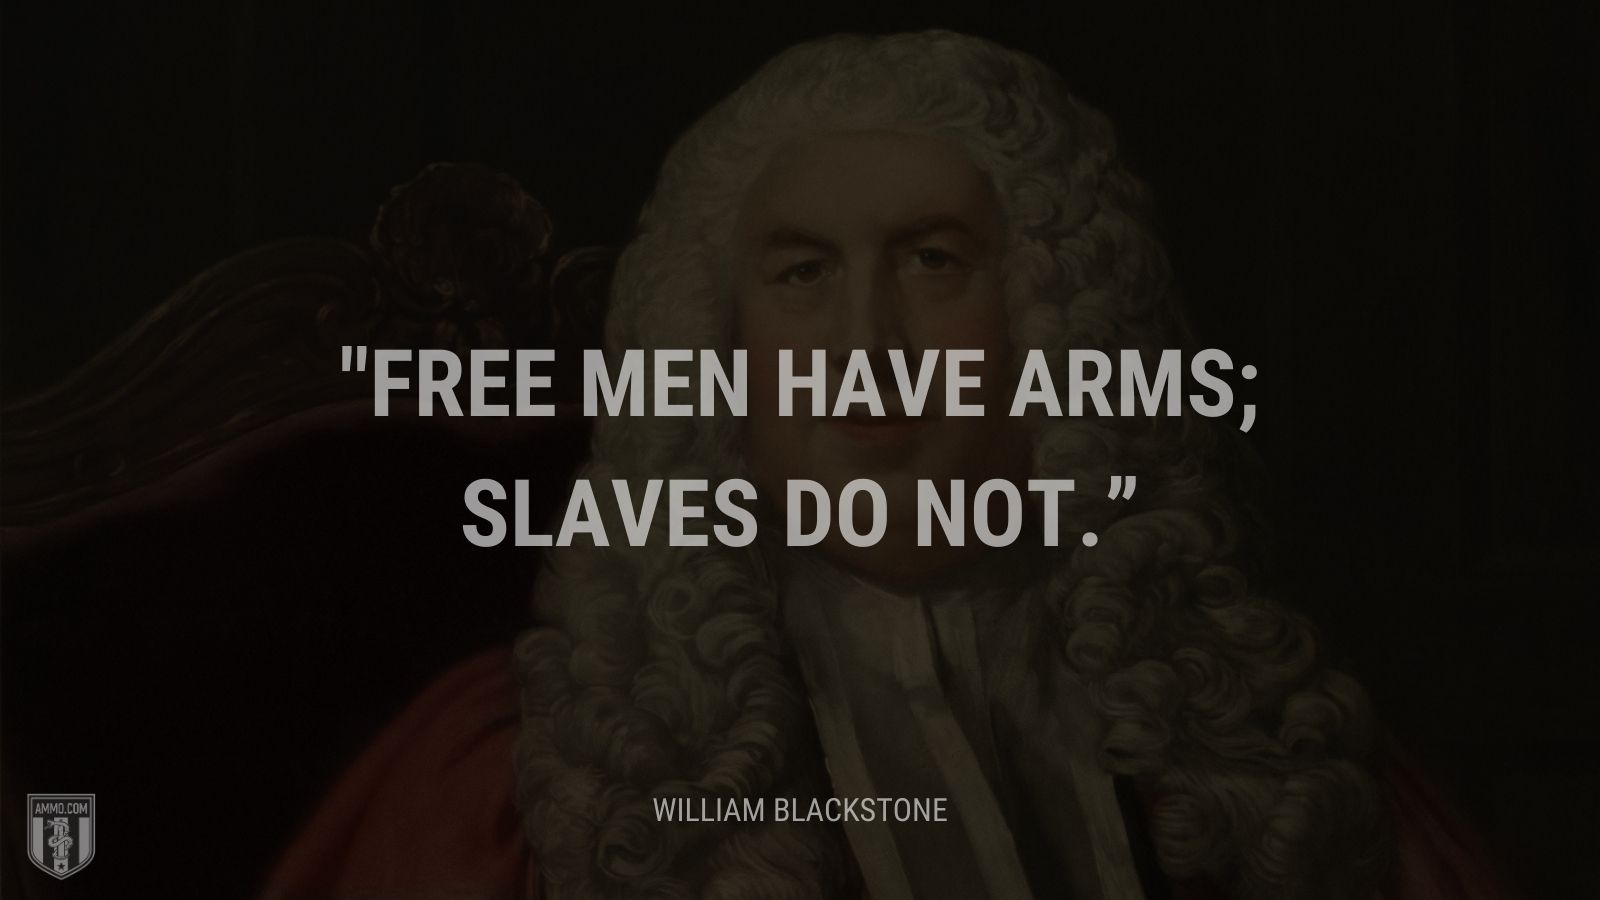 """Free men have arms; slaves do not."" - William Blackstone"